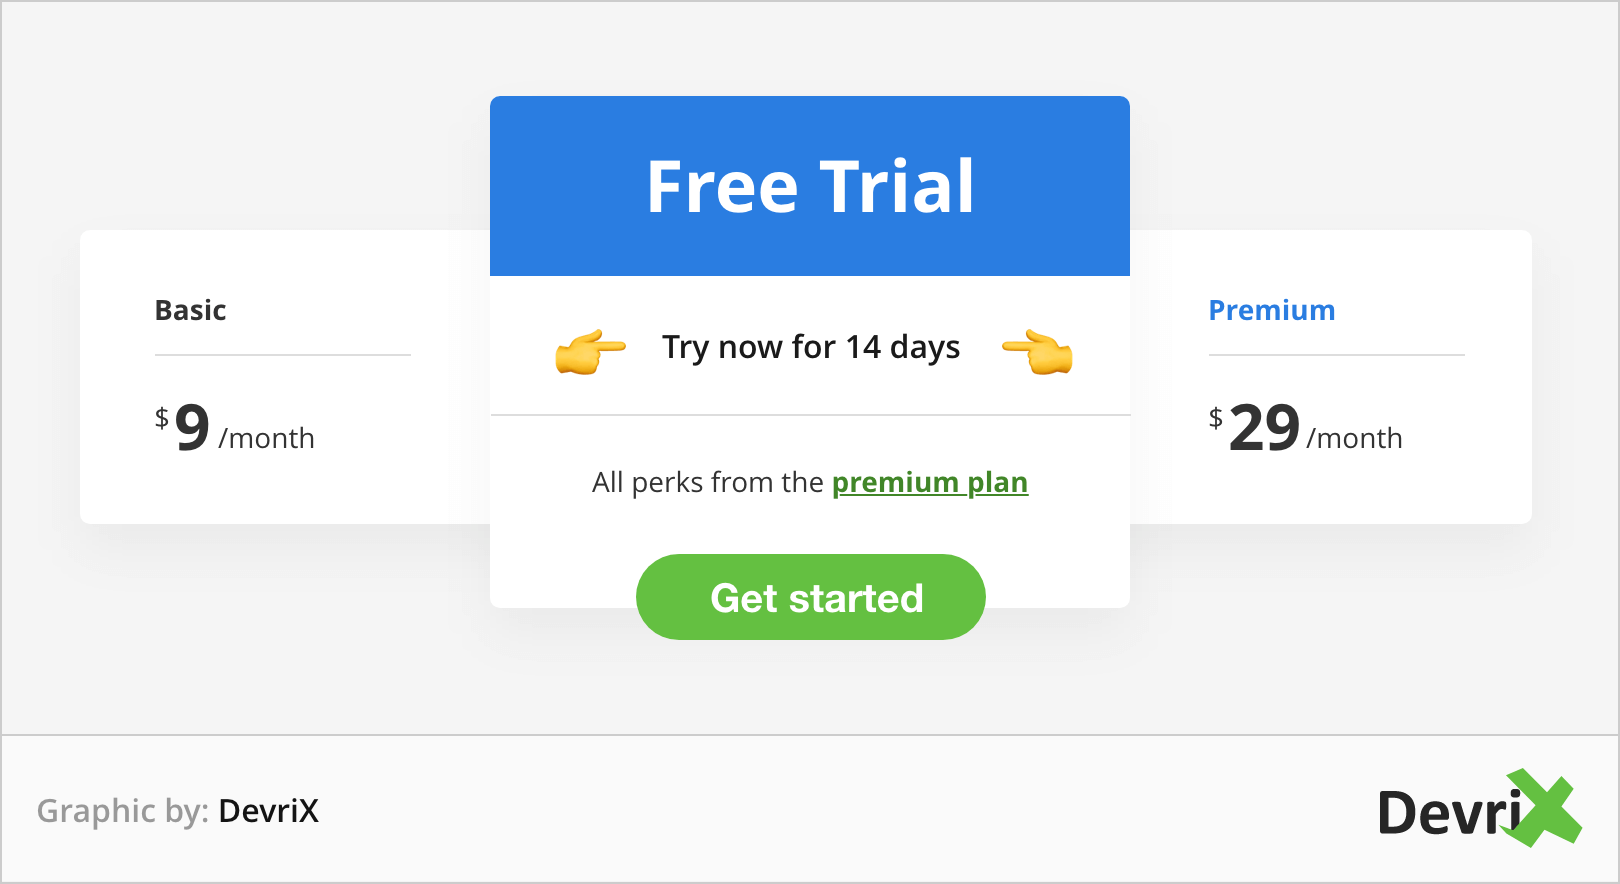 offer a free trial